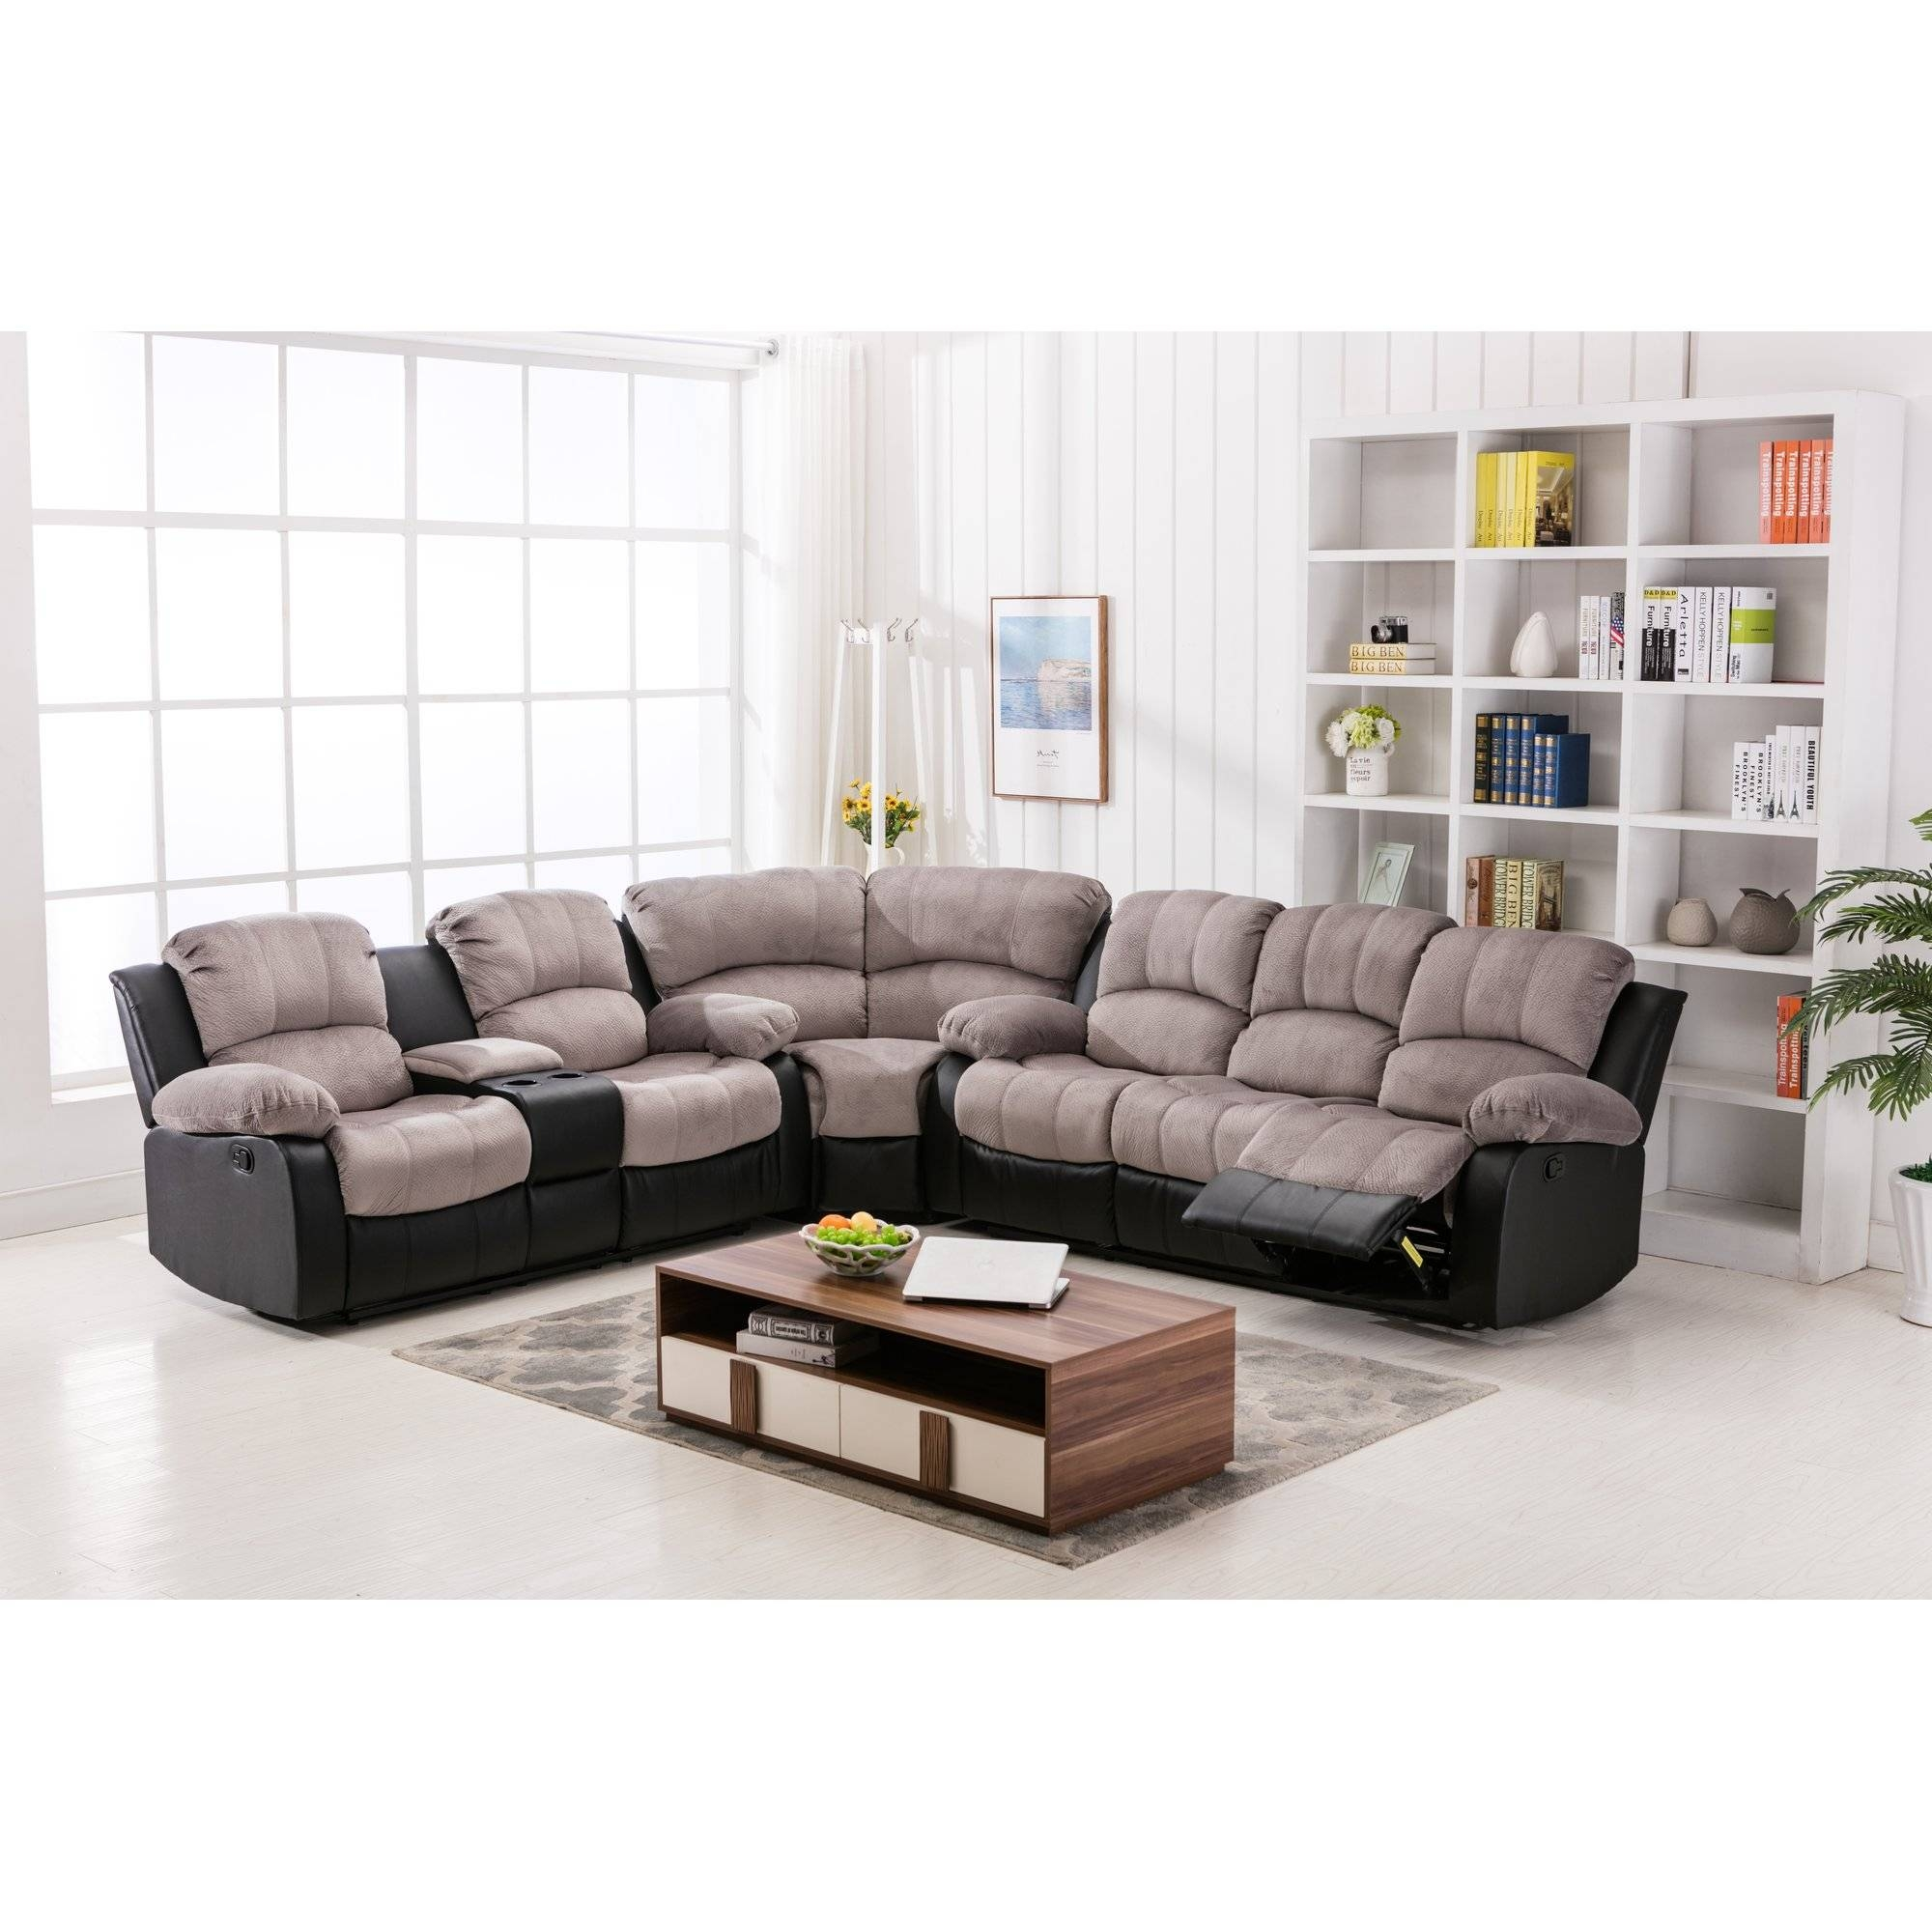 Jedd Fabric Reclining Sectional Sofa ~ Instasofa regarding Jedd Fabric Reclining Sectional Sofa (Image 22 of 30)